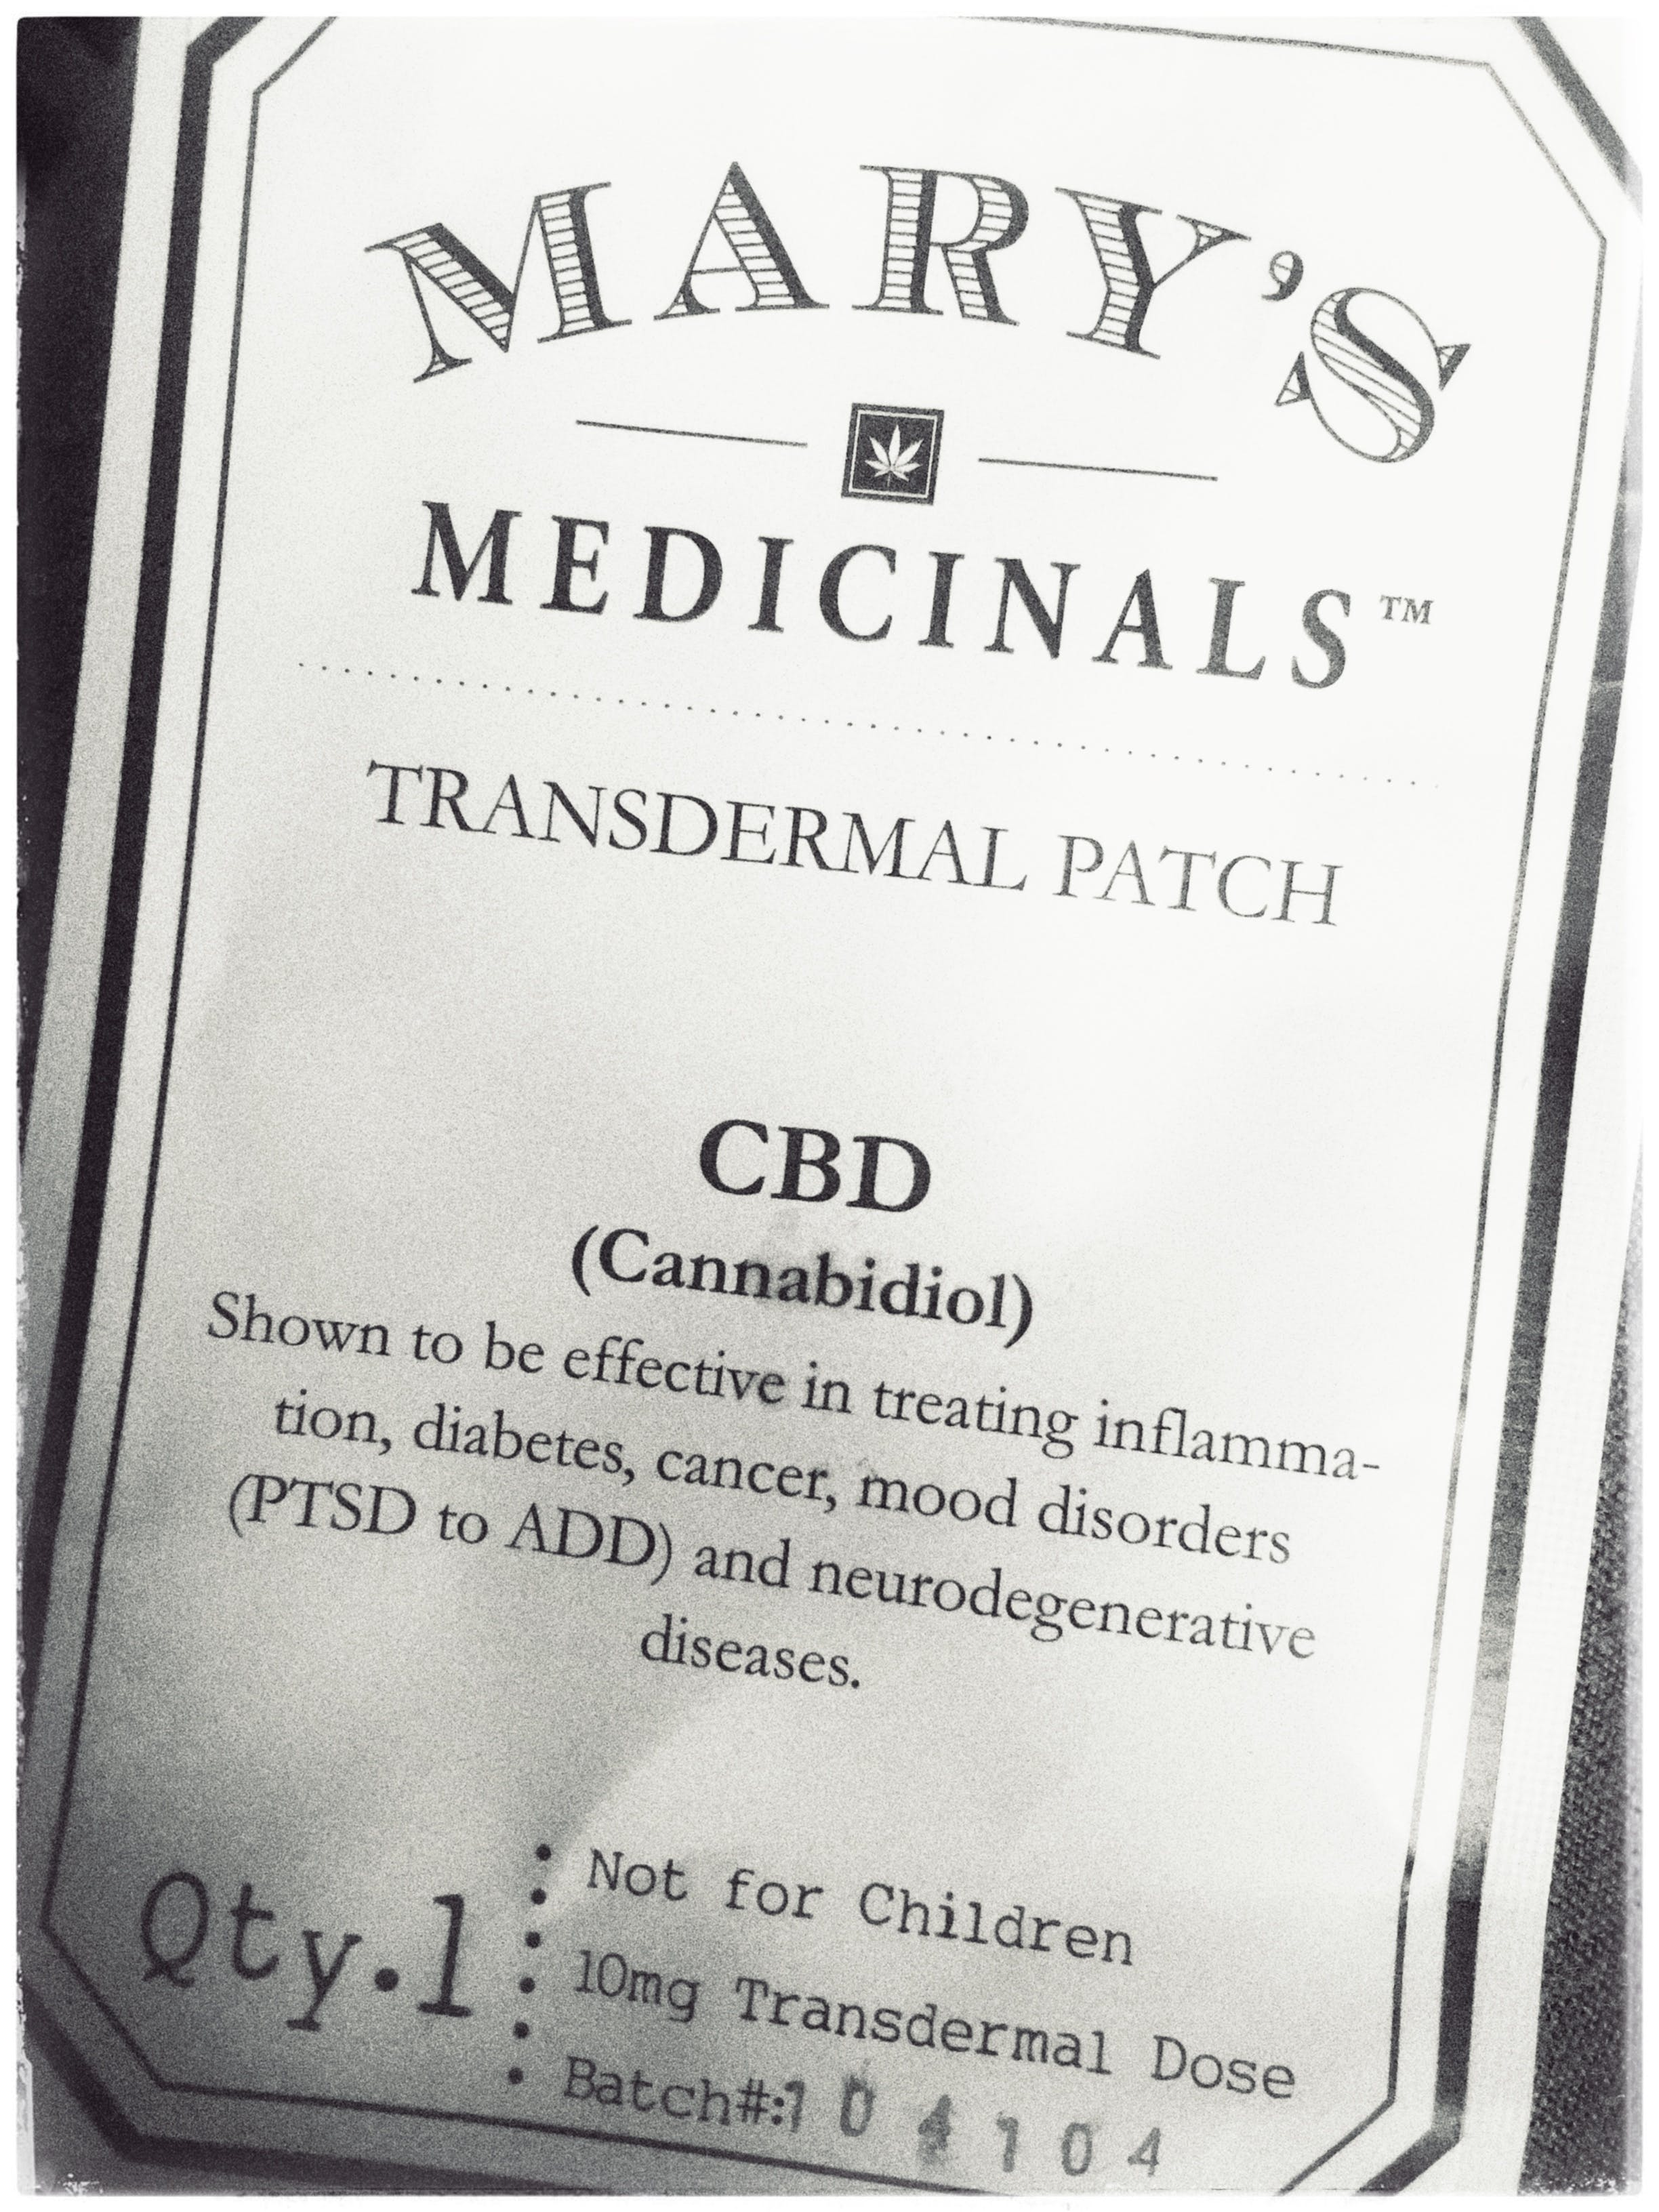 marijuana-dispensaries-liberty-health-sciences-miami-in-miami-marys-medicinal-cbd-patch